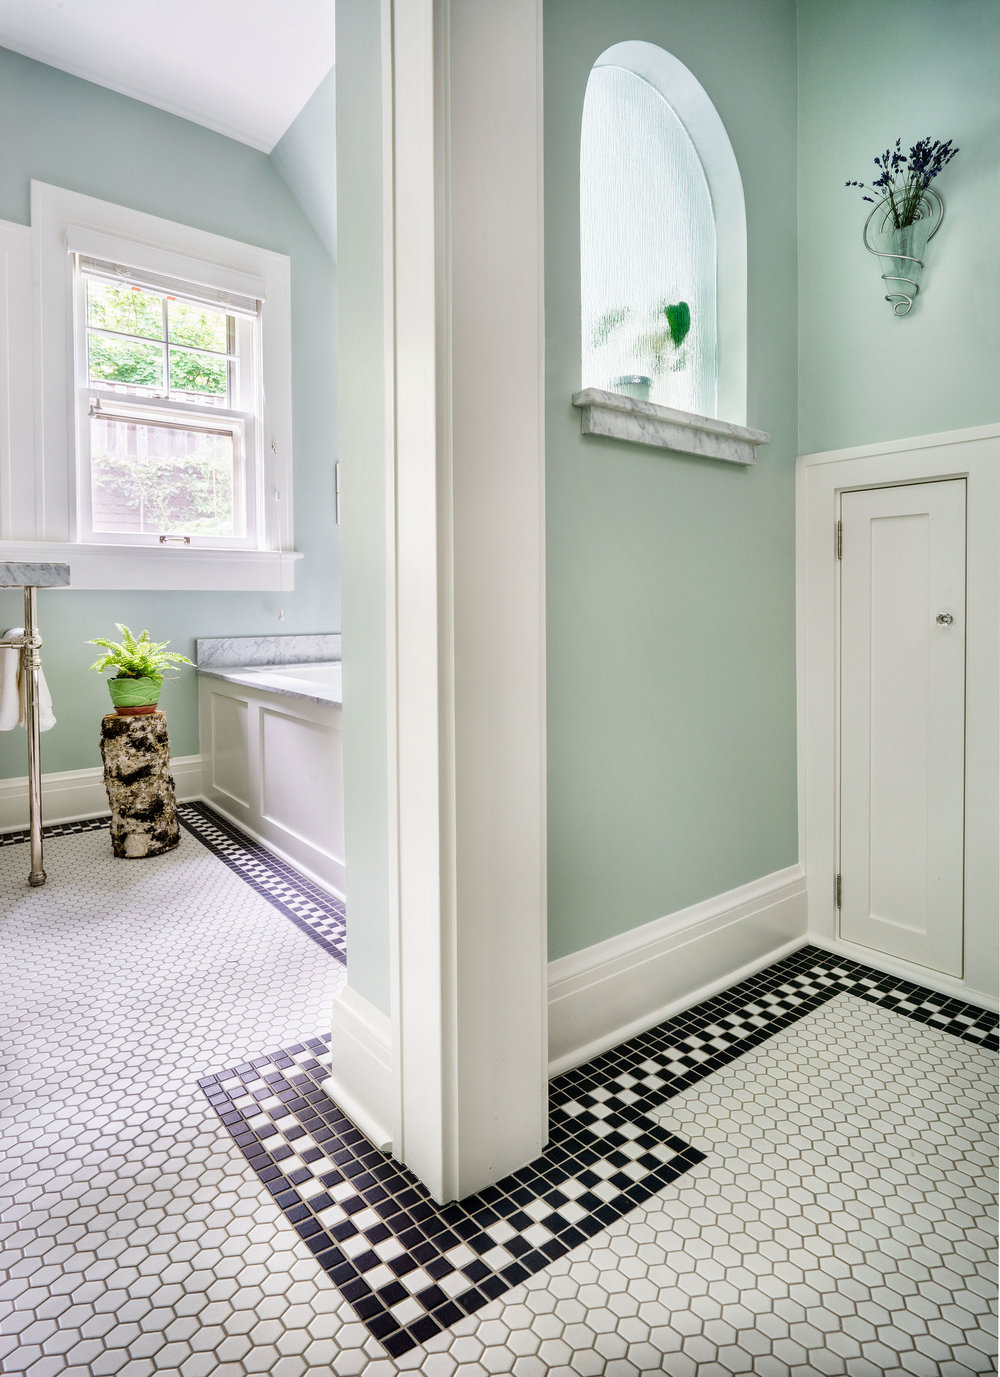 Vintage tile flooring and trim.